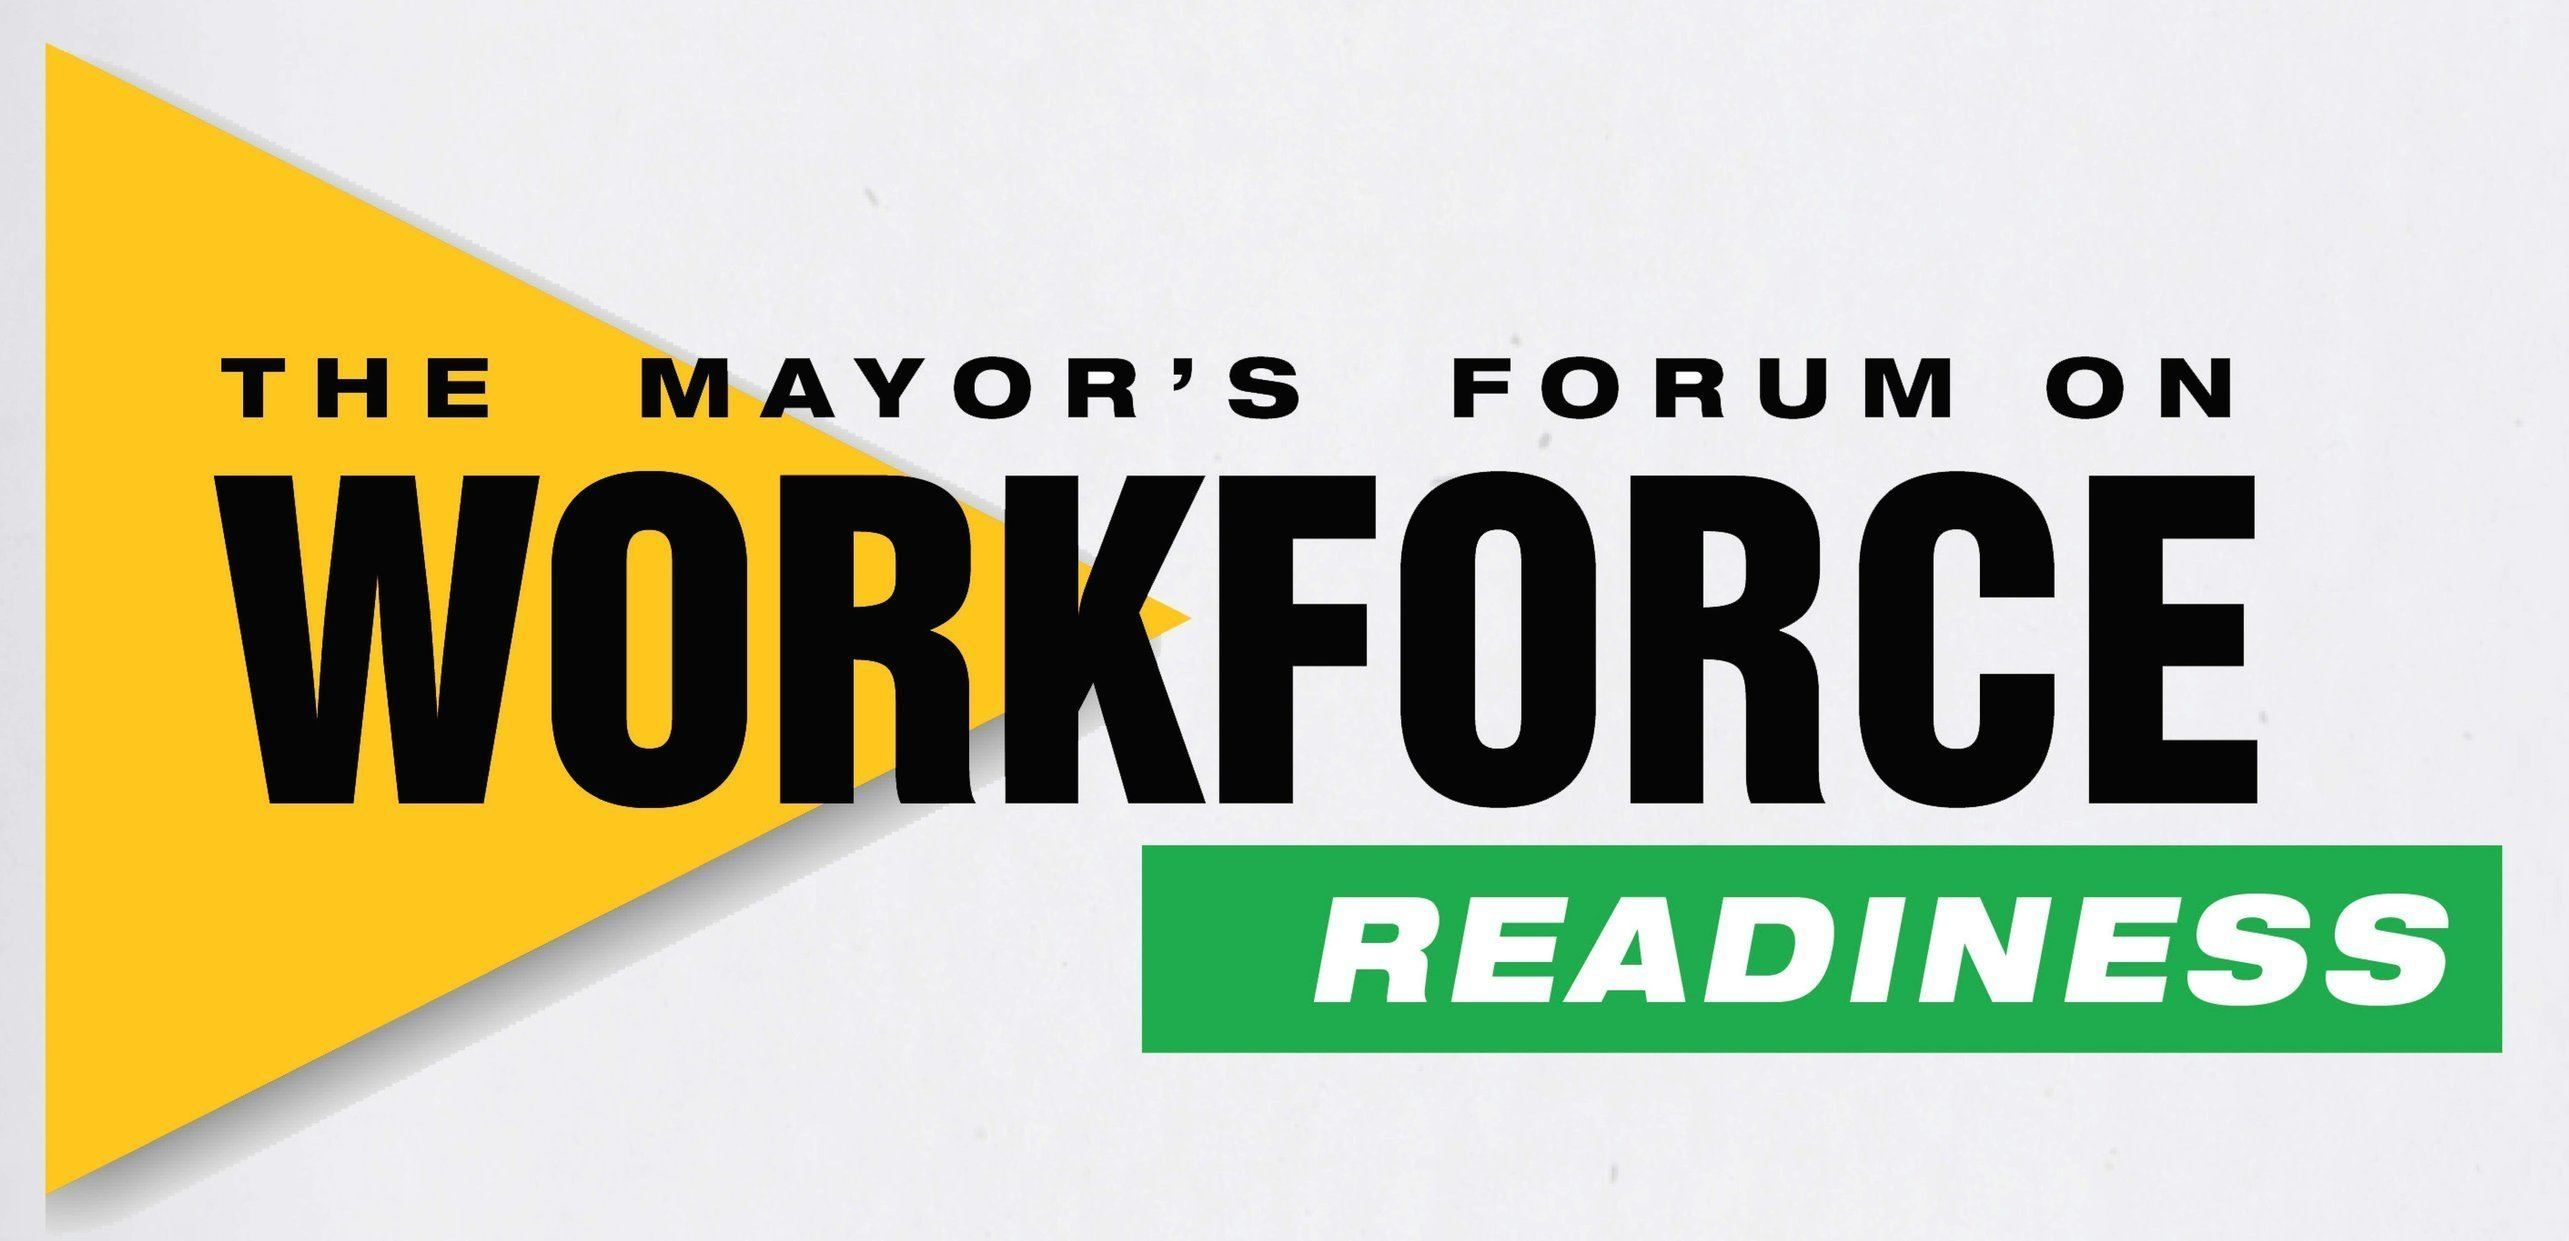 The Mayor's Forum on Workforce Readiness